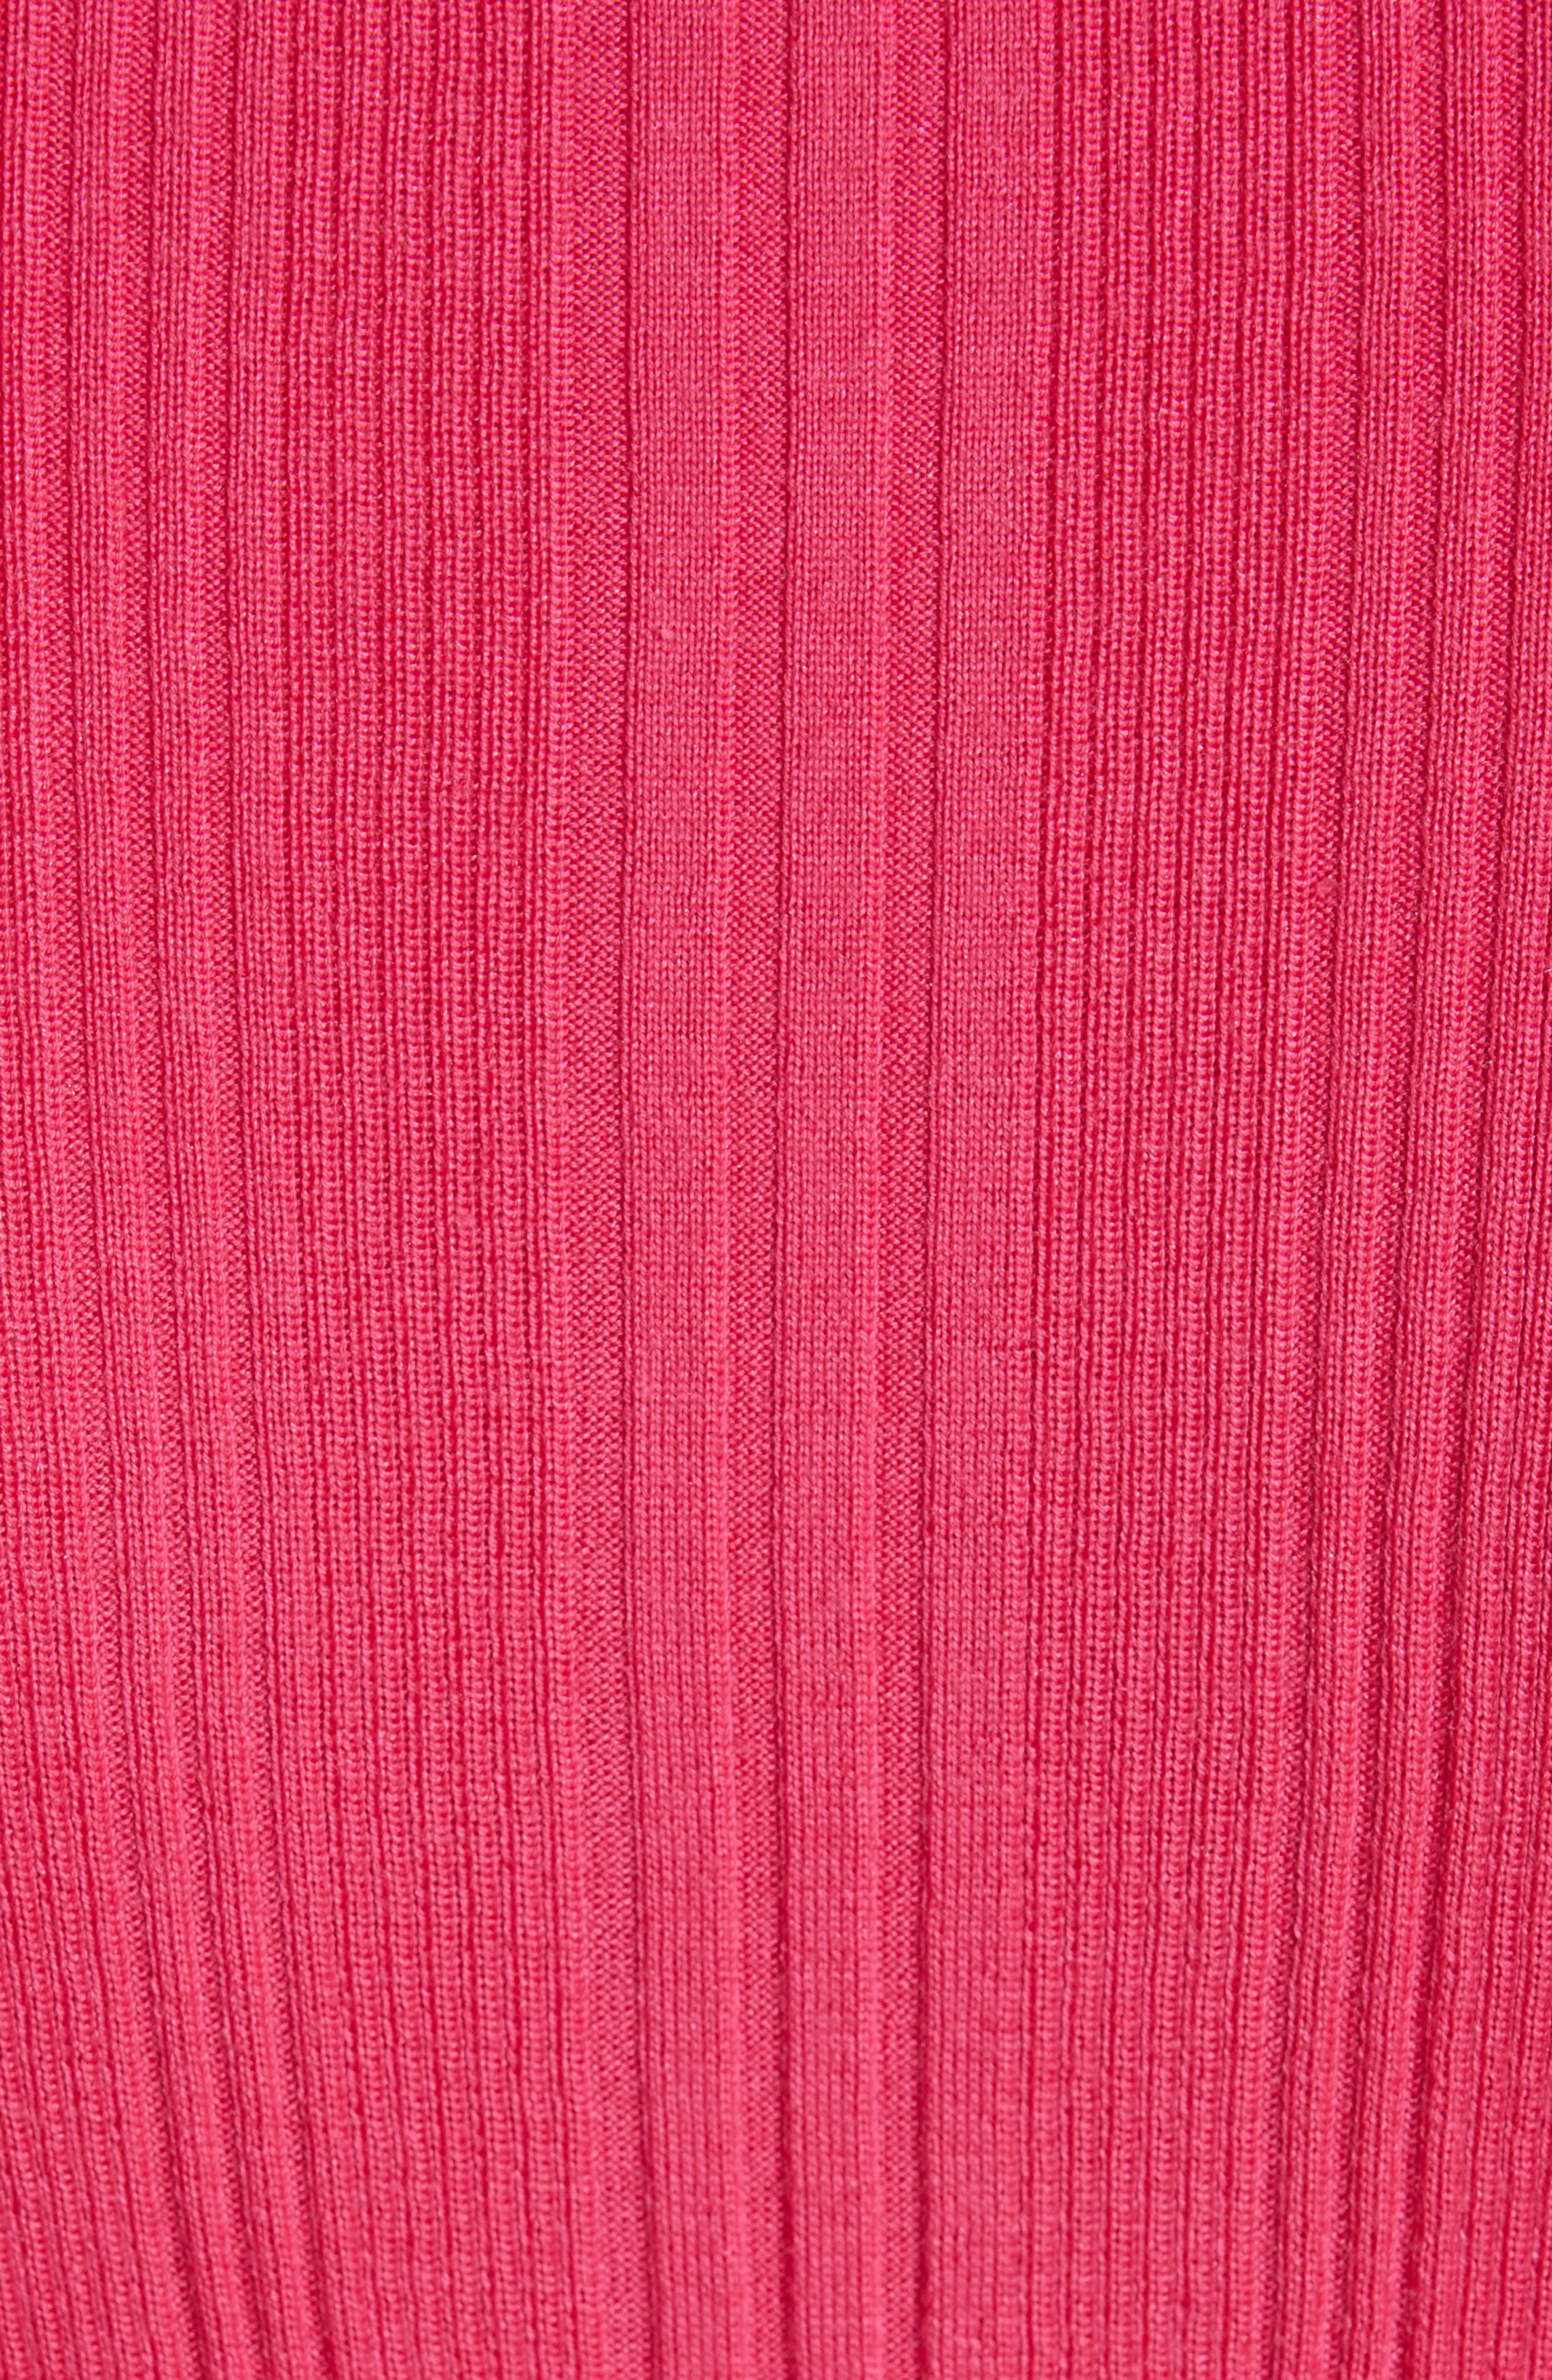 ST. JOHN COLLECTION, Superfine Variegated Rib Sweater, Alternate thumbnail 5, color, FLAMINGO